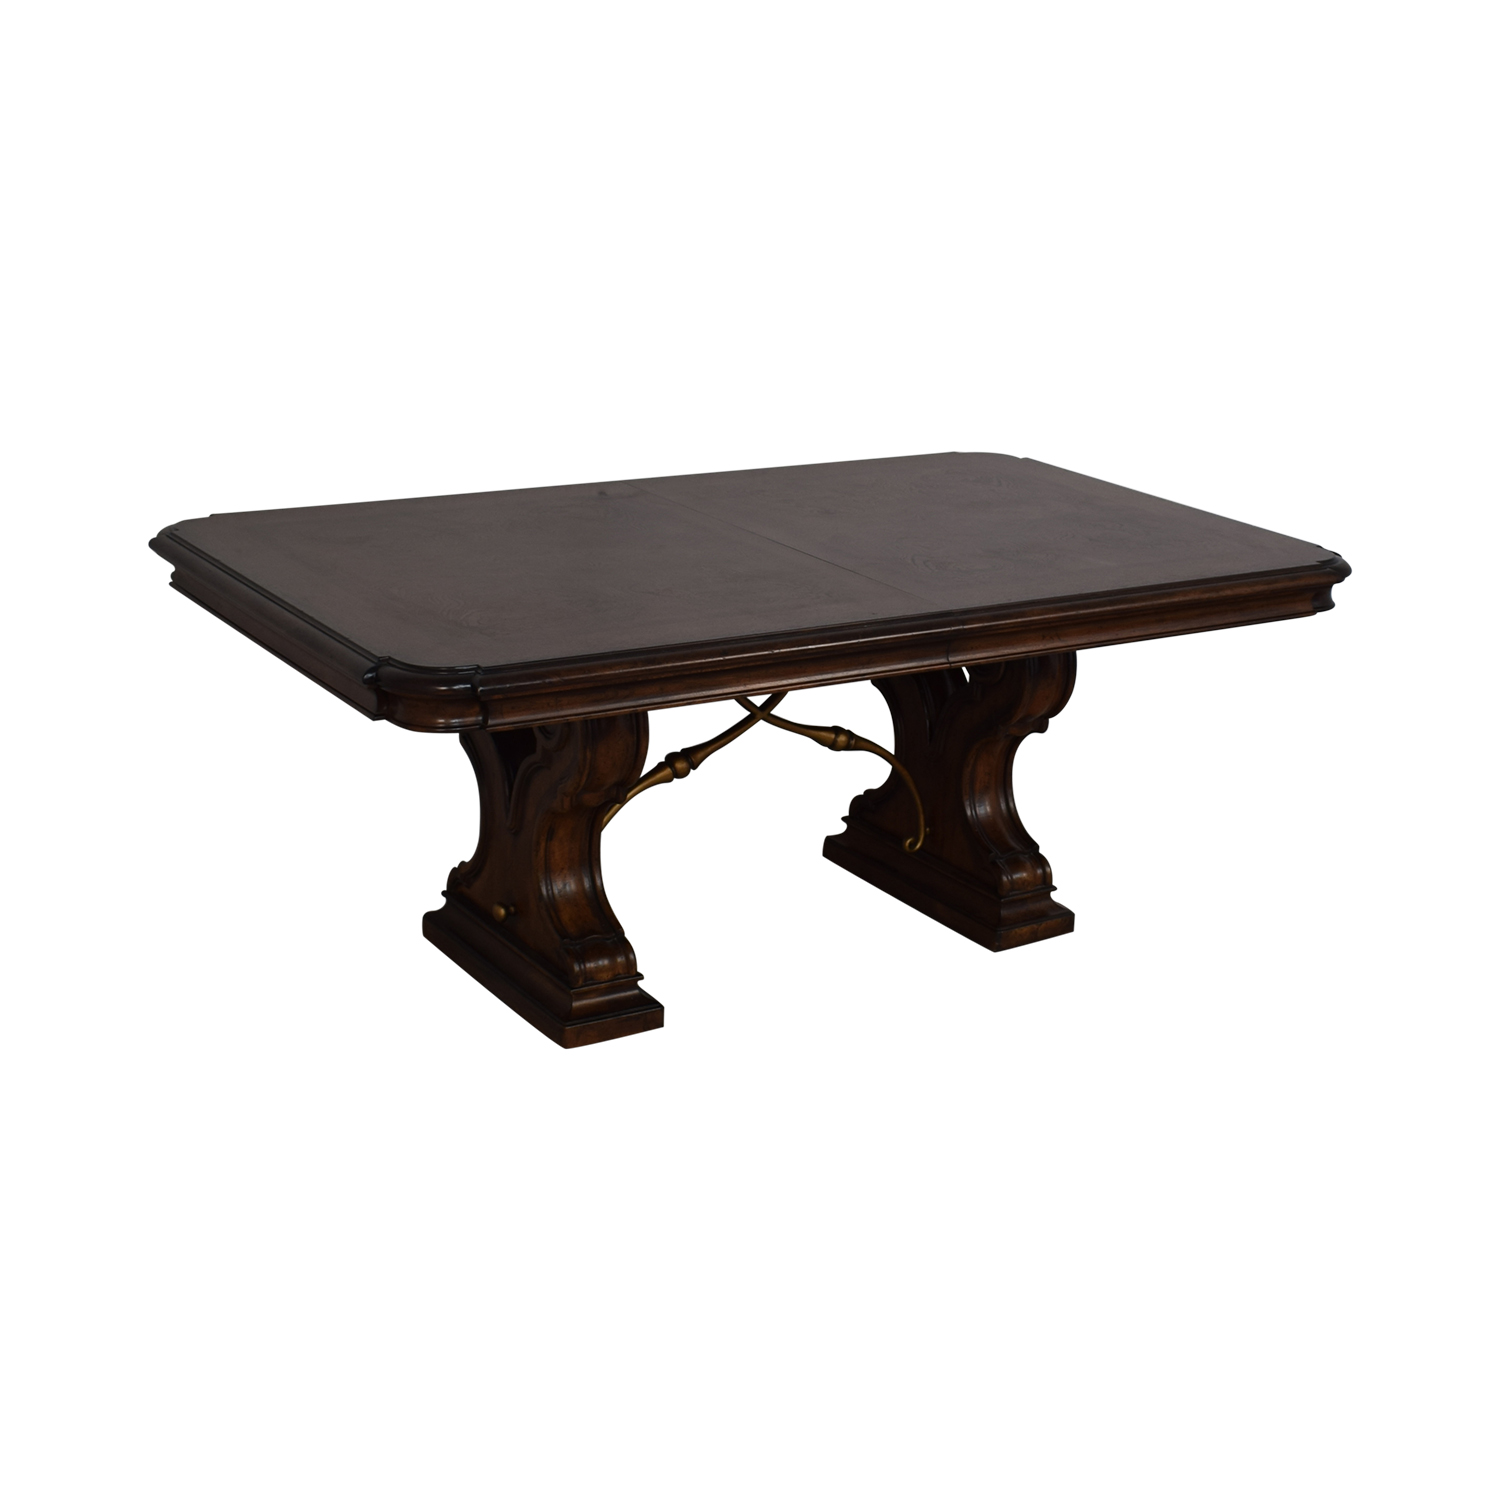 Thomasville Bibbiano Trestle Dining Table / Tables